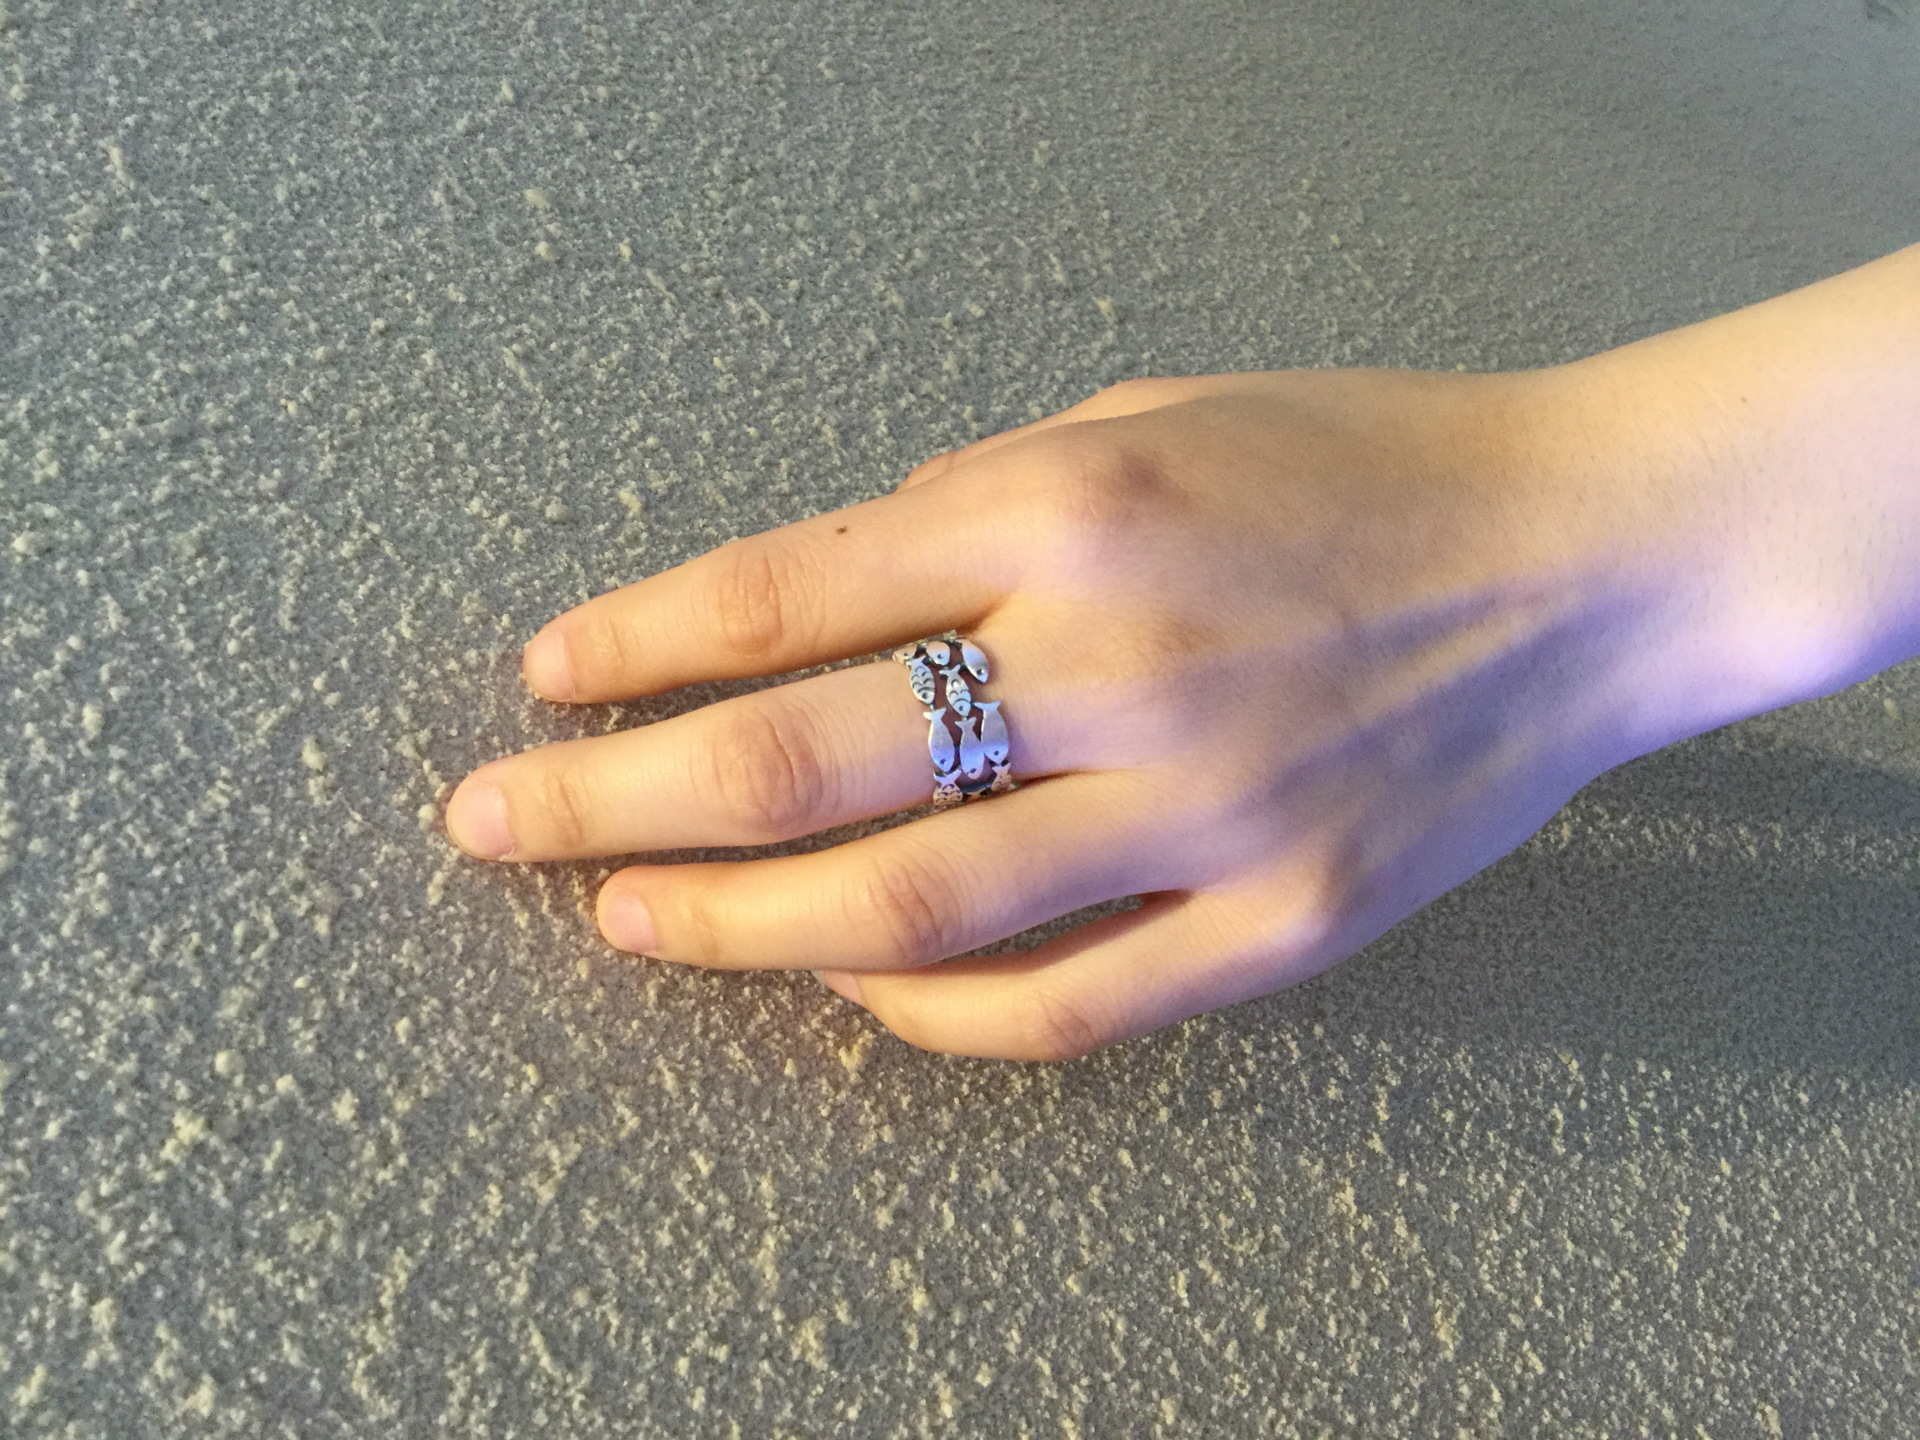 Stunning 925 Sterling Silver Swimming Fish Ring in model in hand